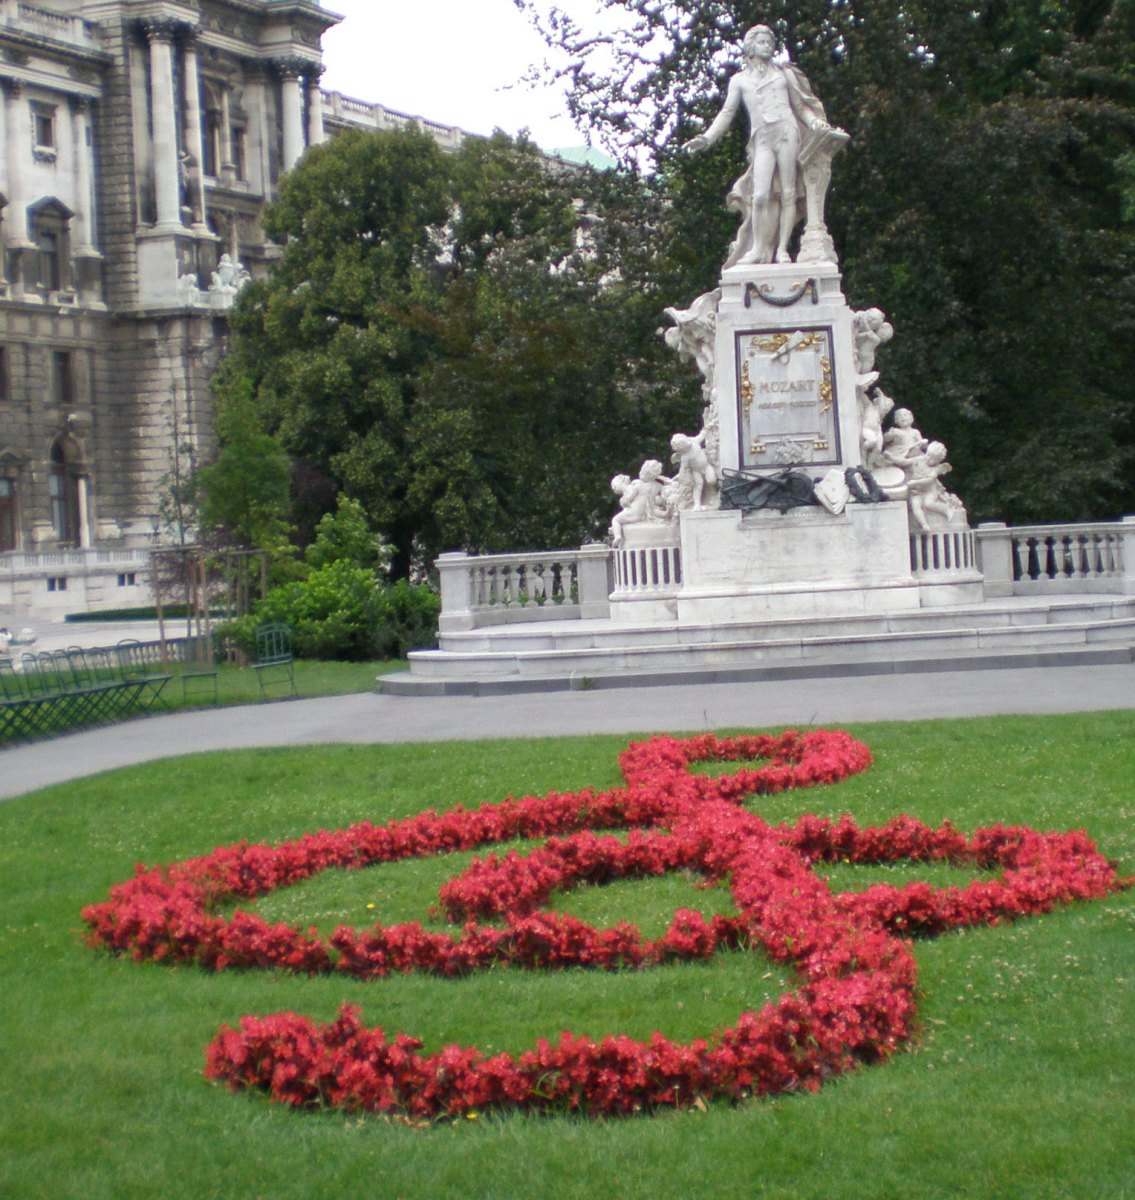 Vienna: City of Famous Composers